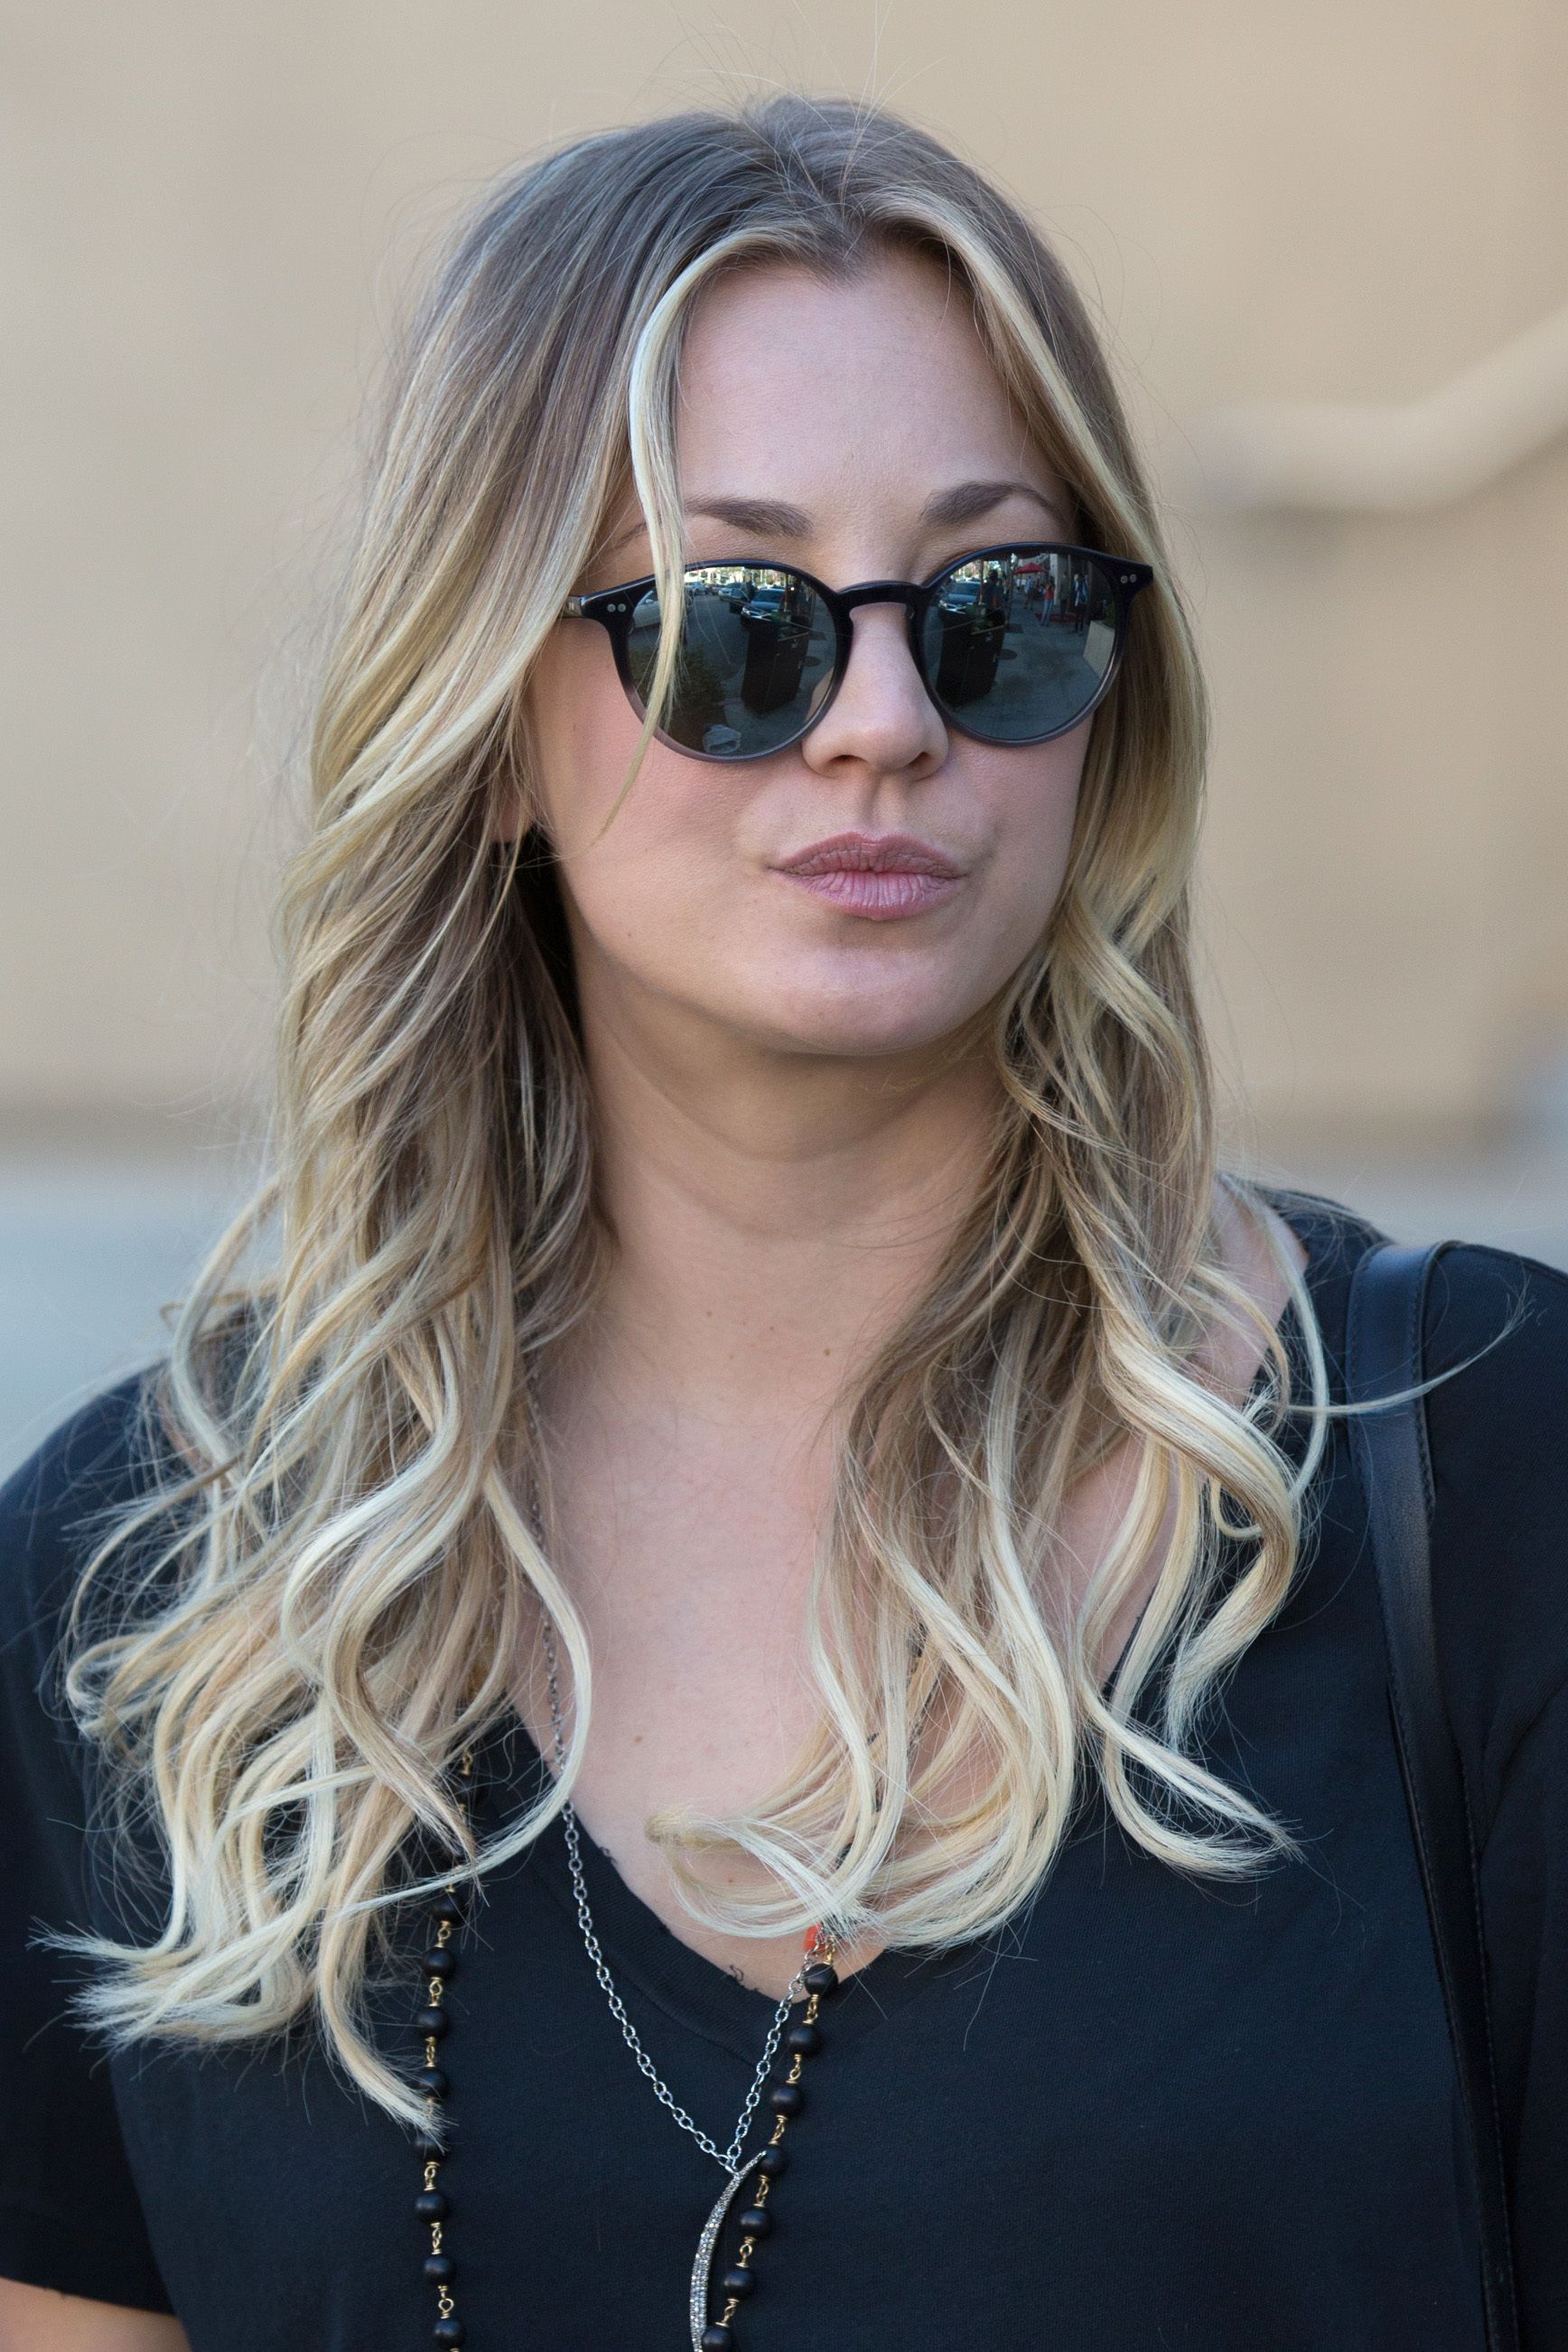 Kaley Cuoco In Beverly Hills 13112013 If I Wanted To Kill My